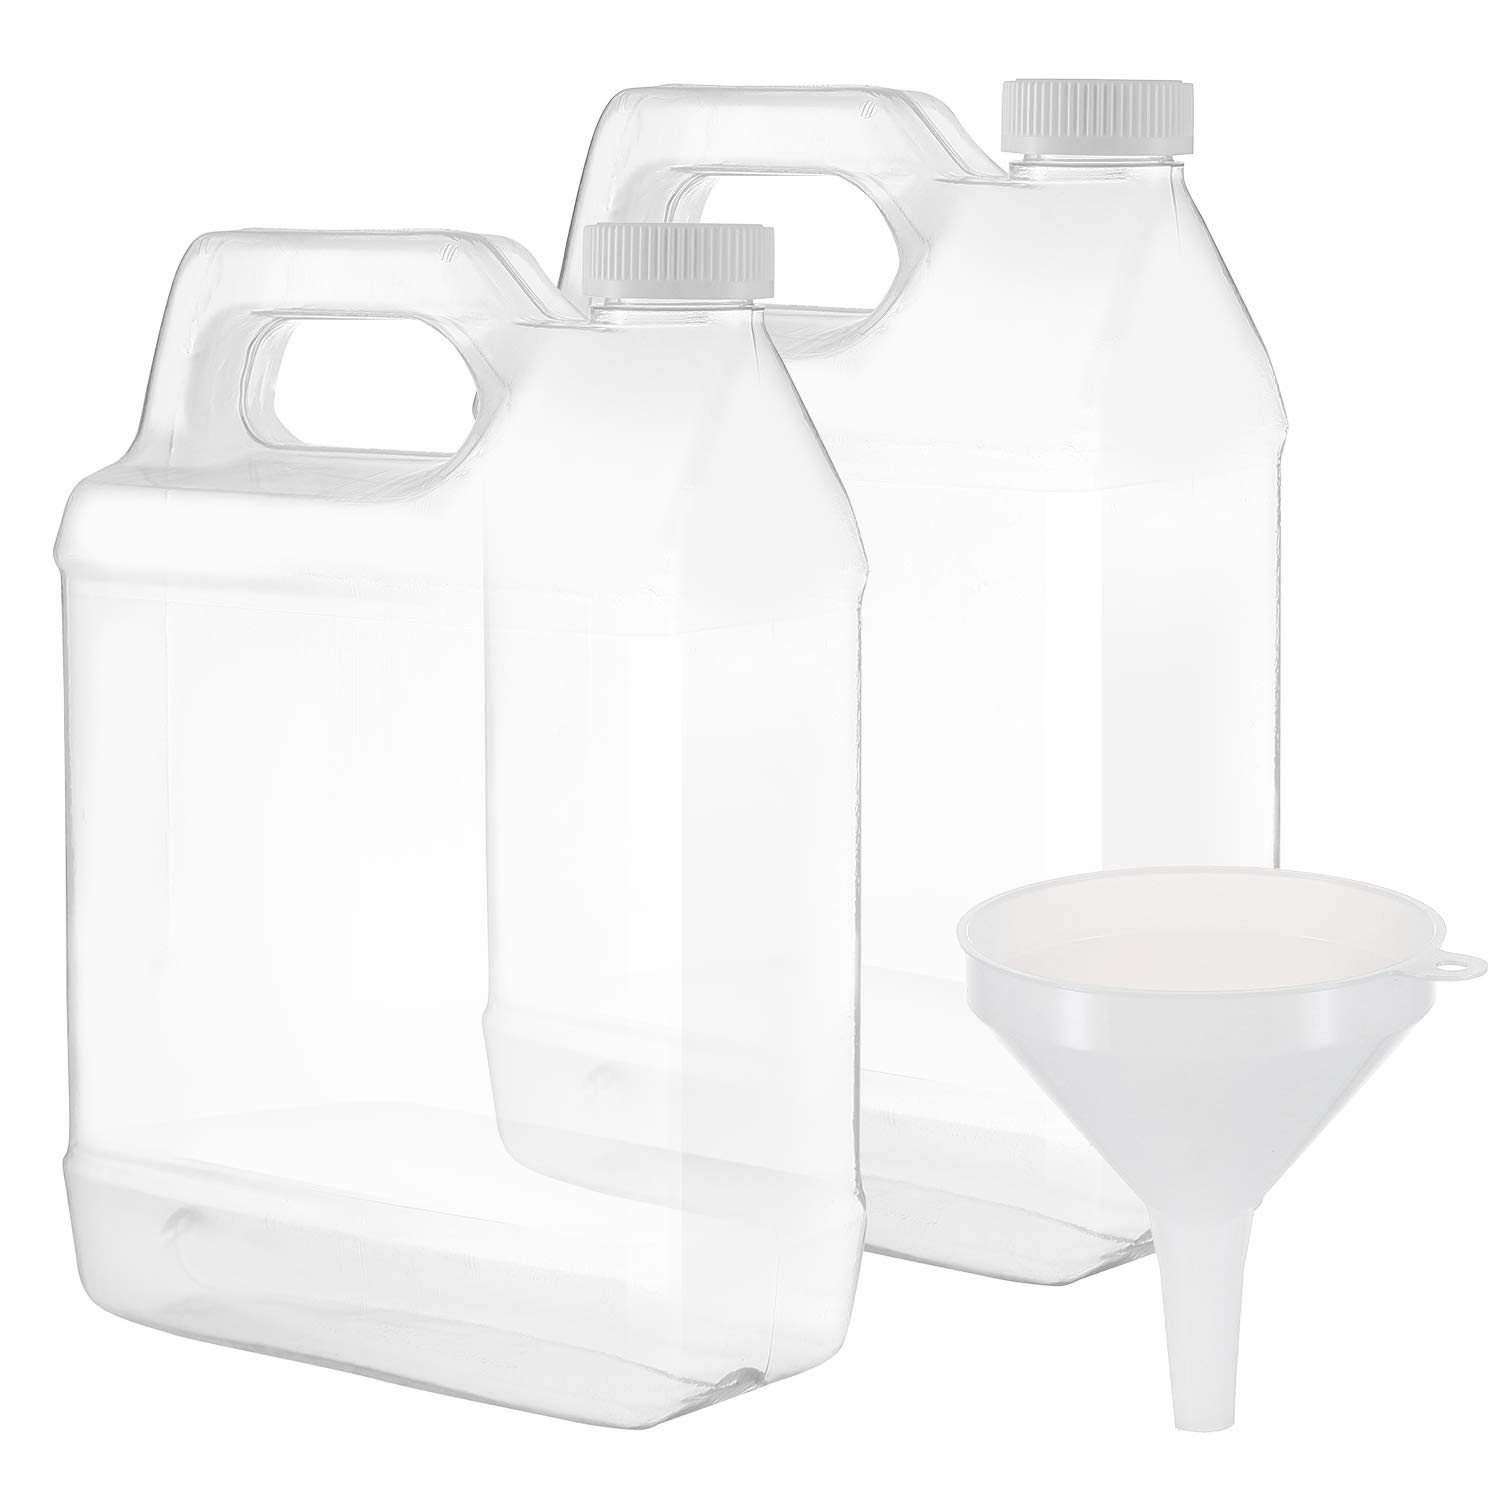 2 Pack - 1 Gallon Clear Plastic Bottle - Large Empty F-Style Jug with Child Resistant Airtight Lids - 128 oz Jugs with caps and Funnel - for Commercial & Industrial Use by DilaBee